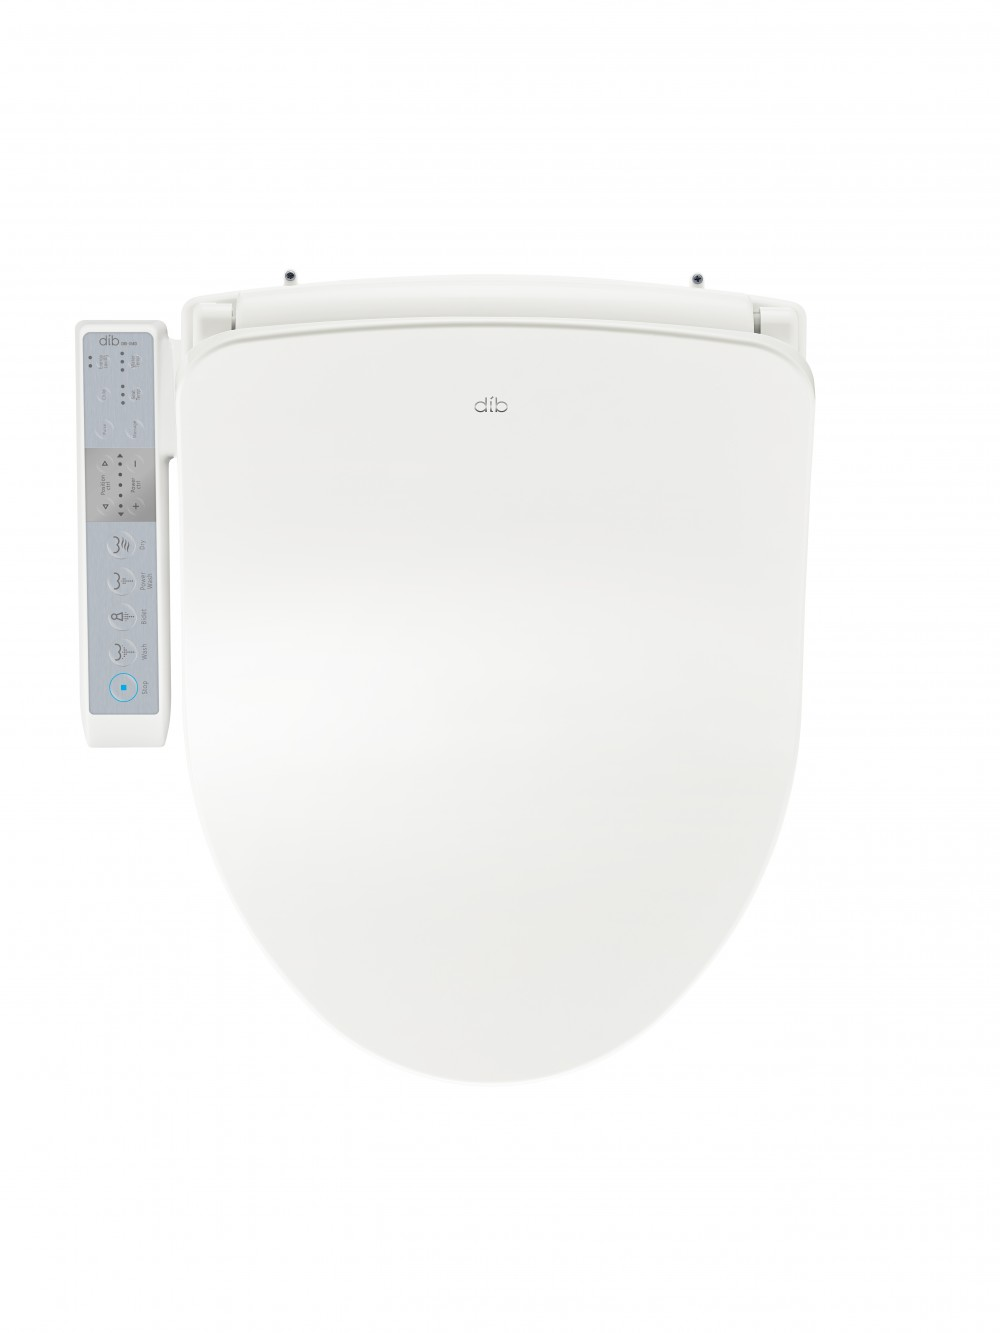 Dib daewon j500 toilet shower washlet